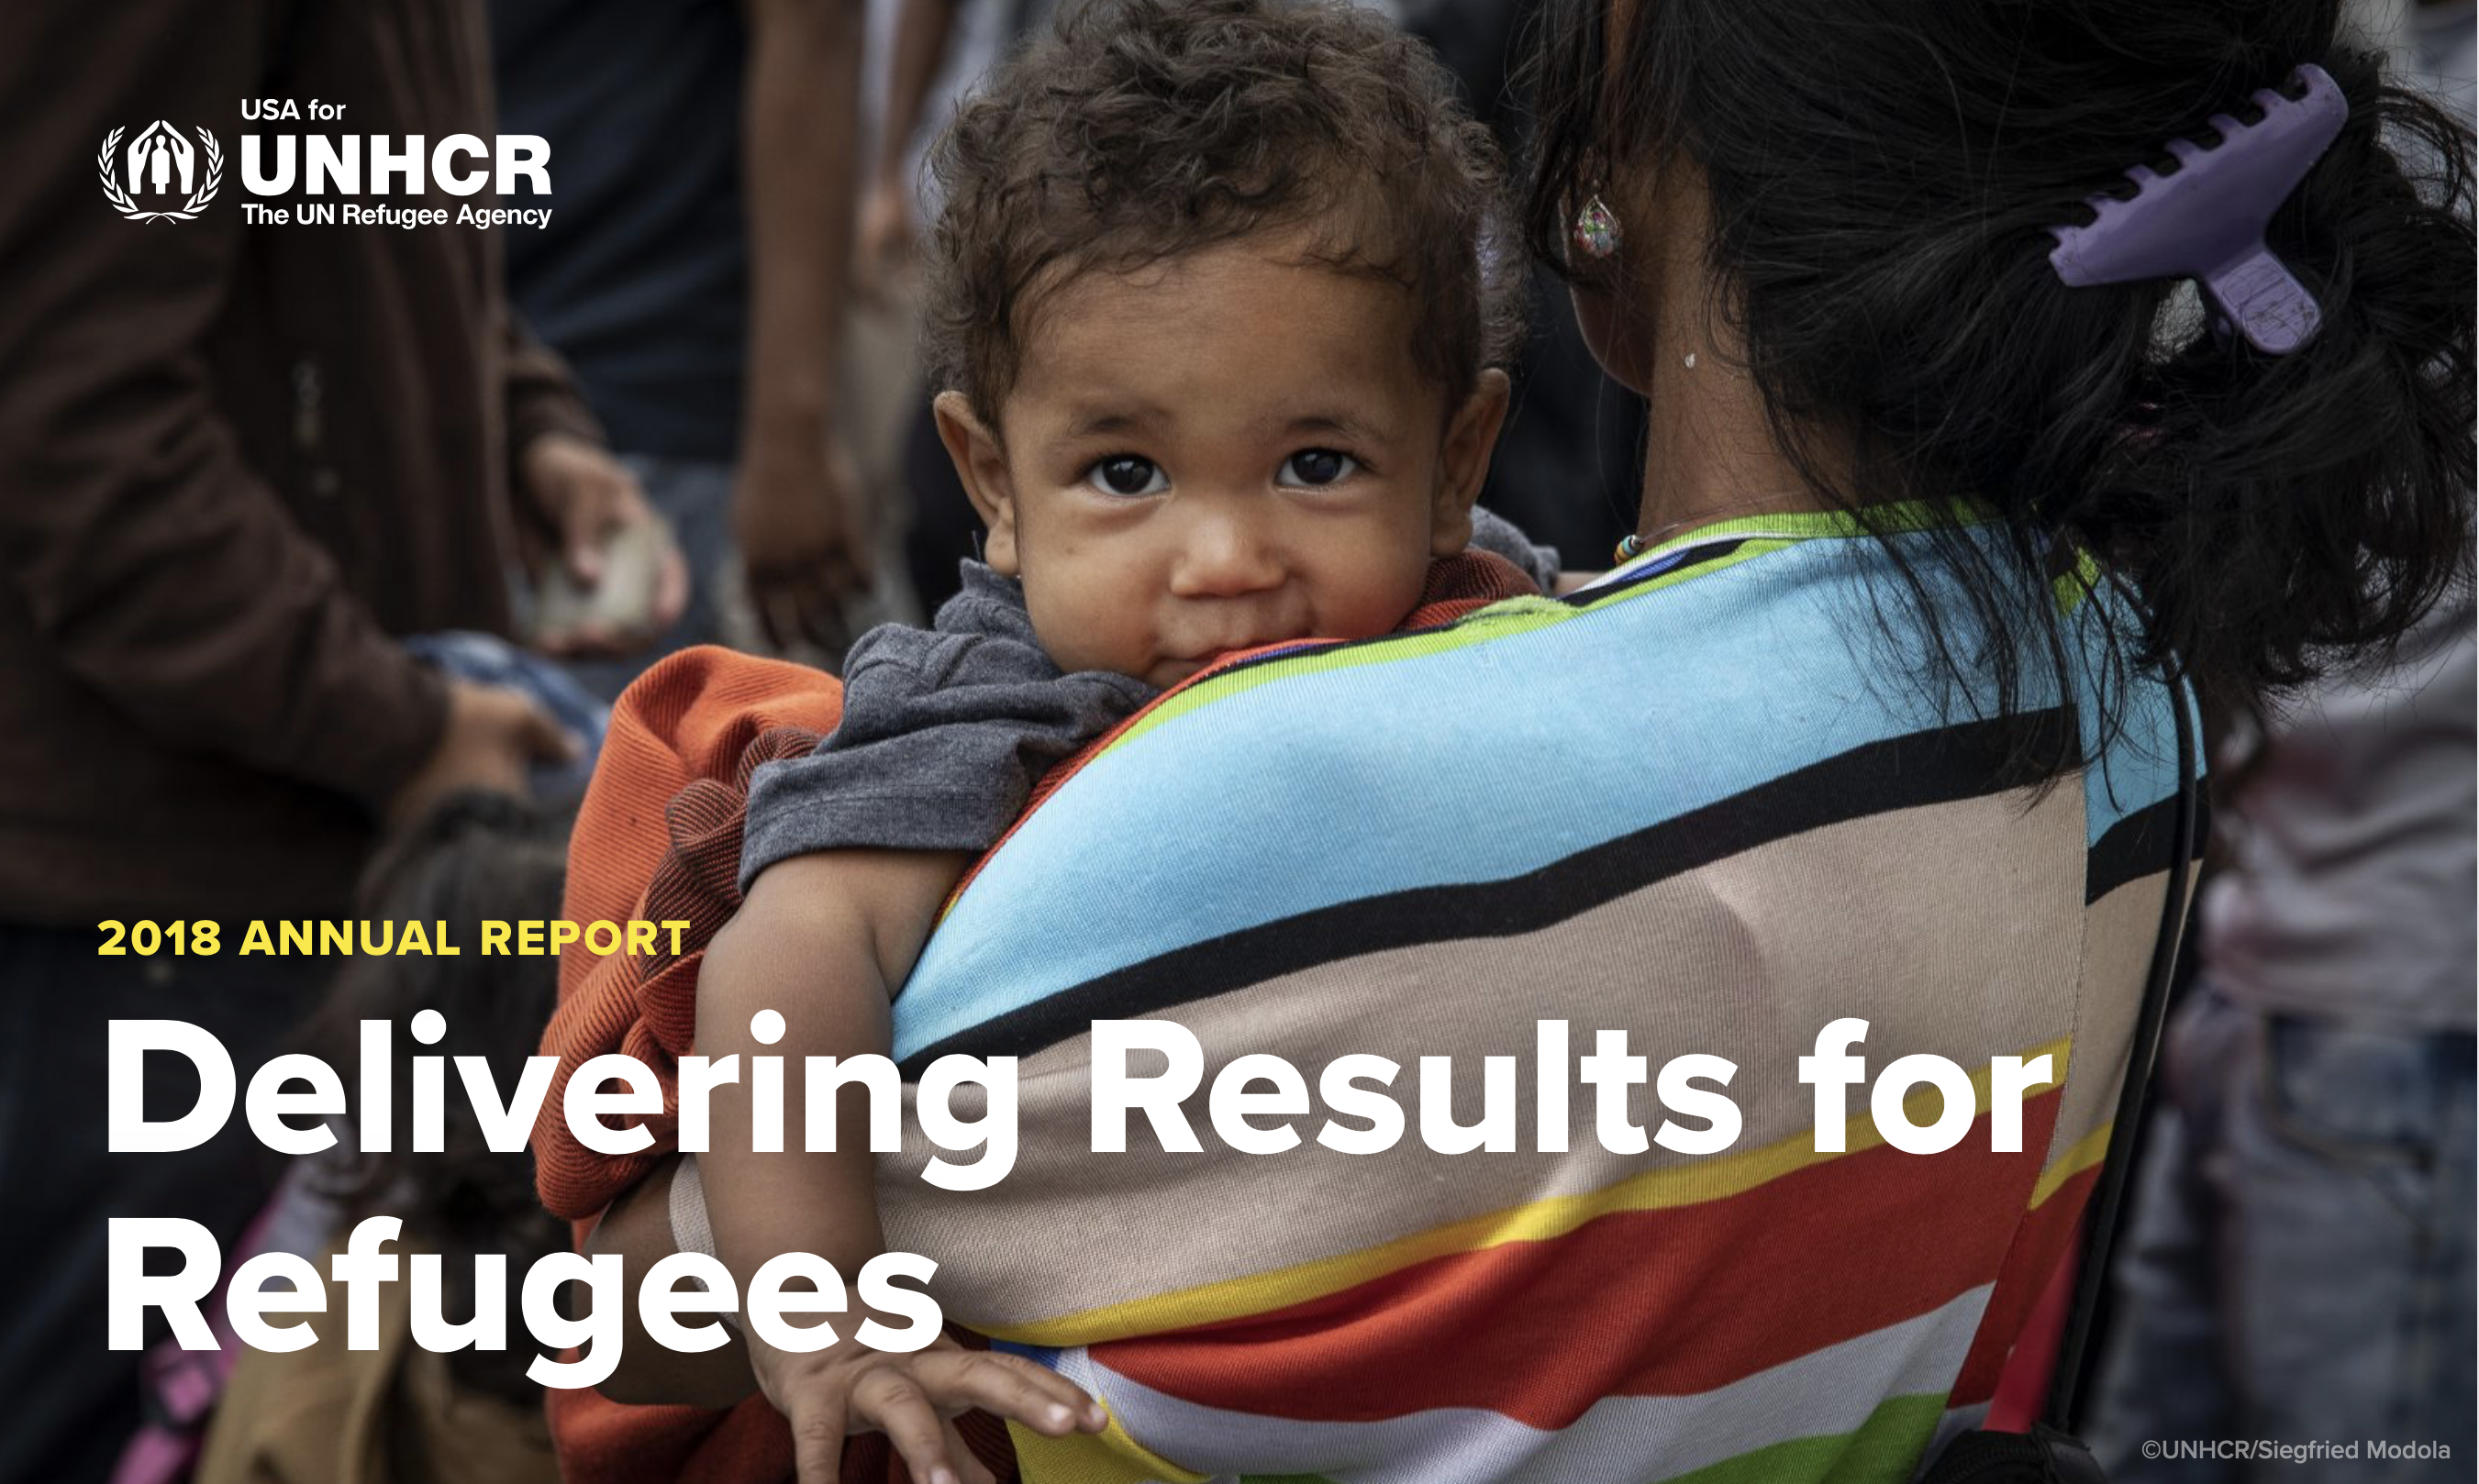 usa for unhcr 2018 annual report